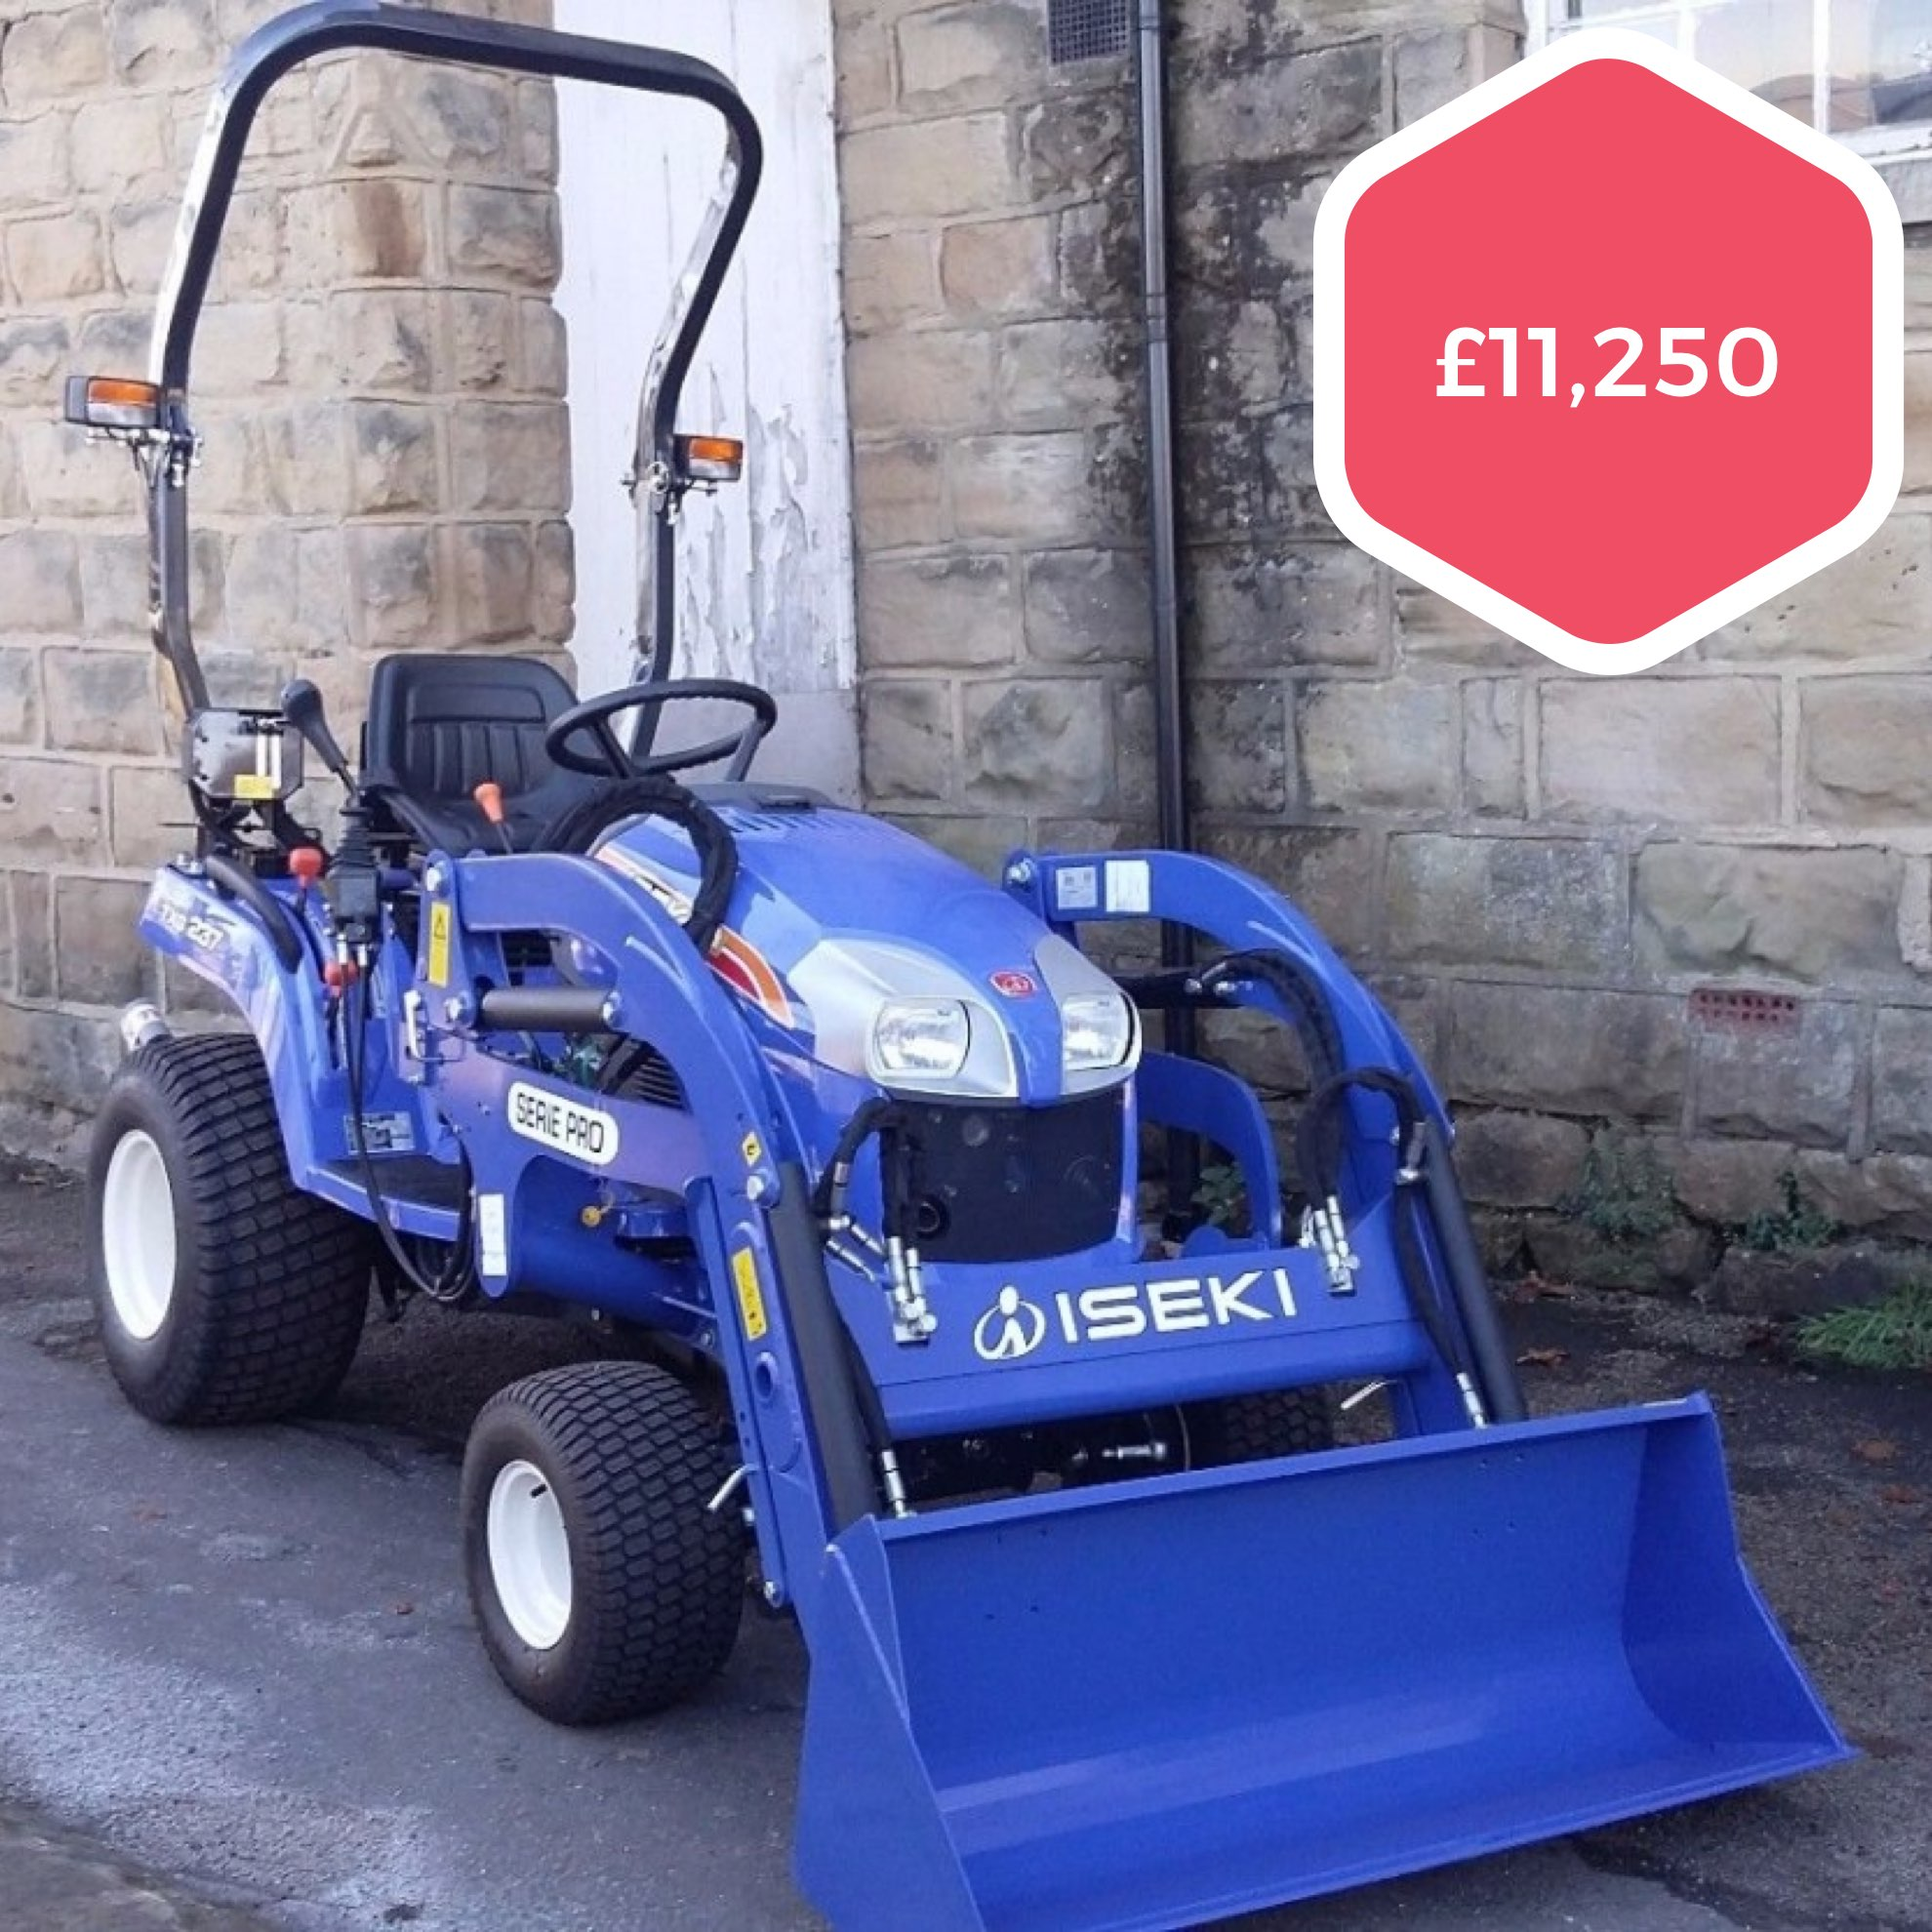 Iseki TXG237 Compact Tractor with V180 Front Loader